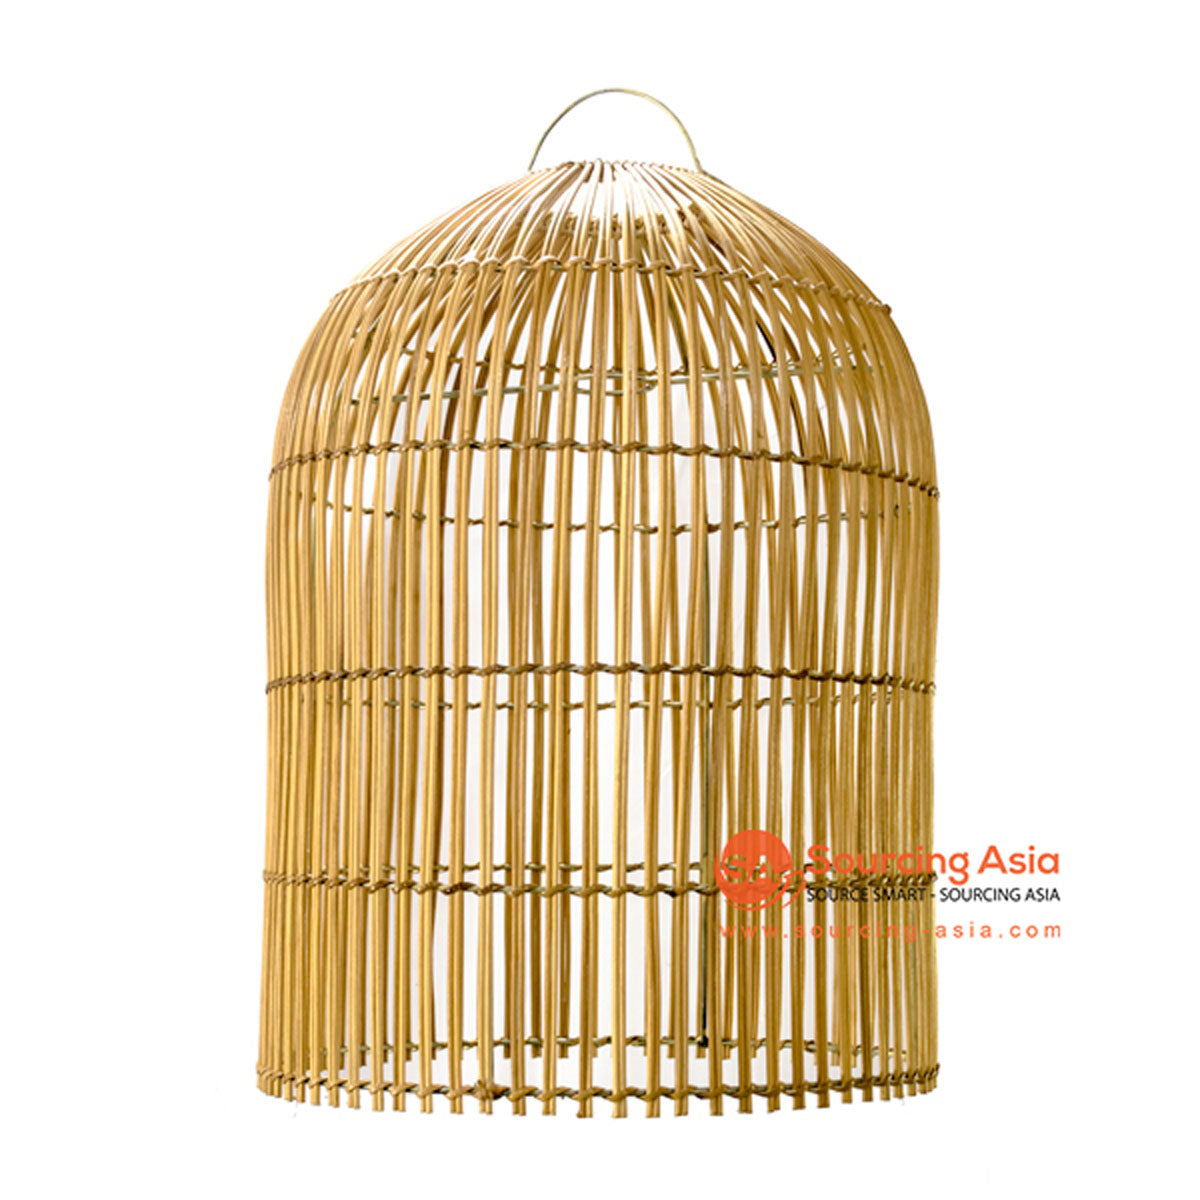 SHL064-16 NATURAL RATTAN PENDANT LAMP